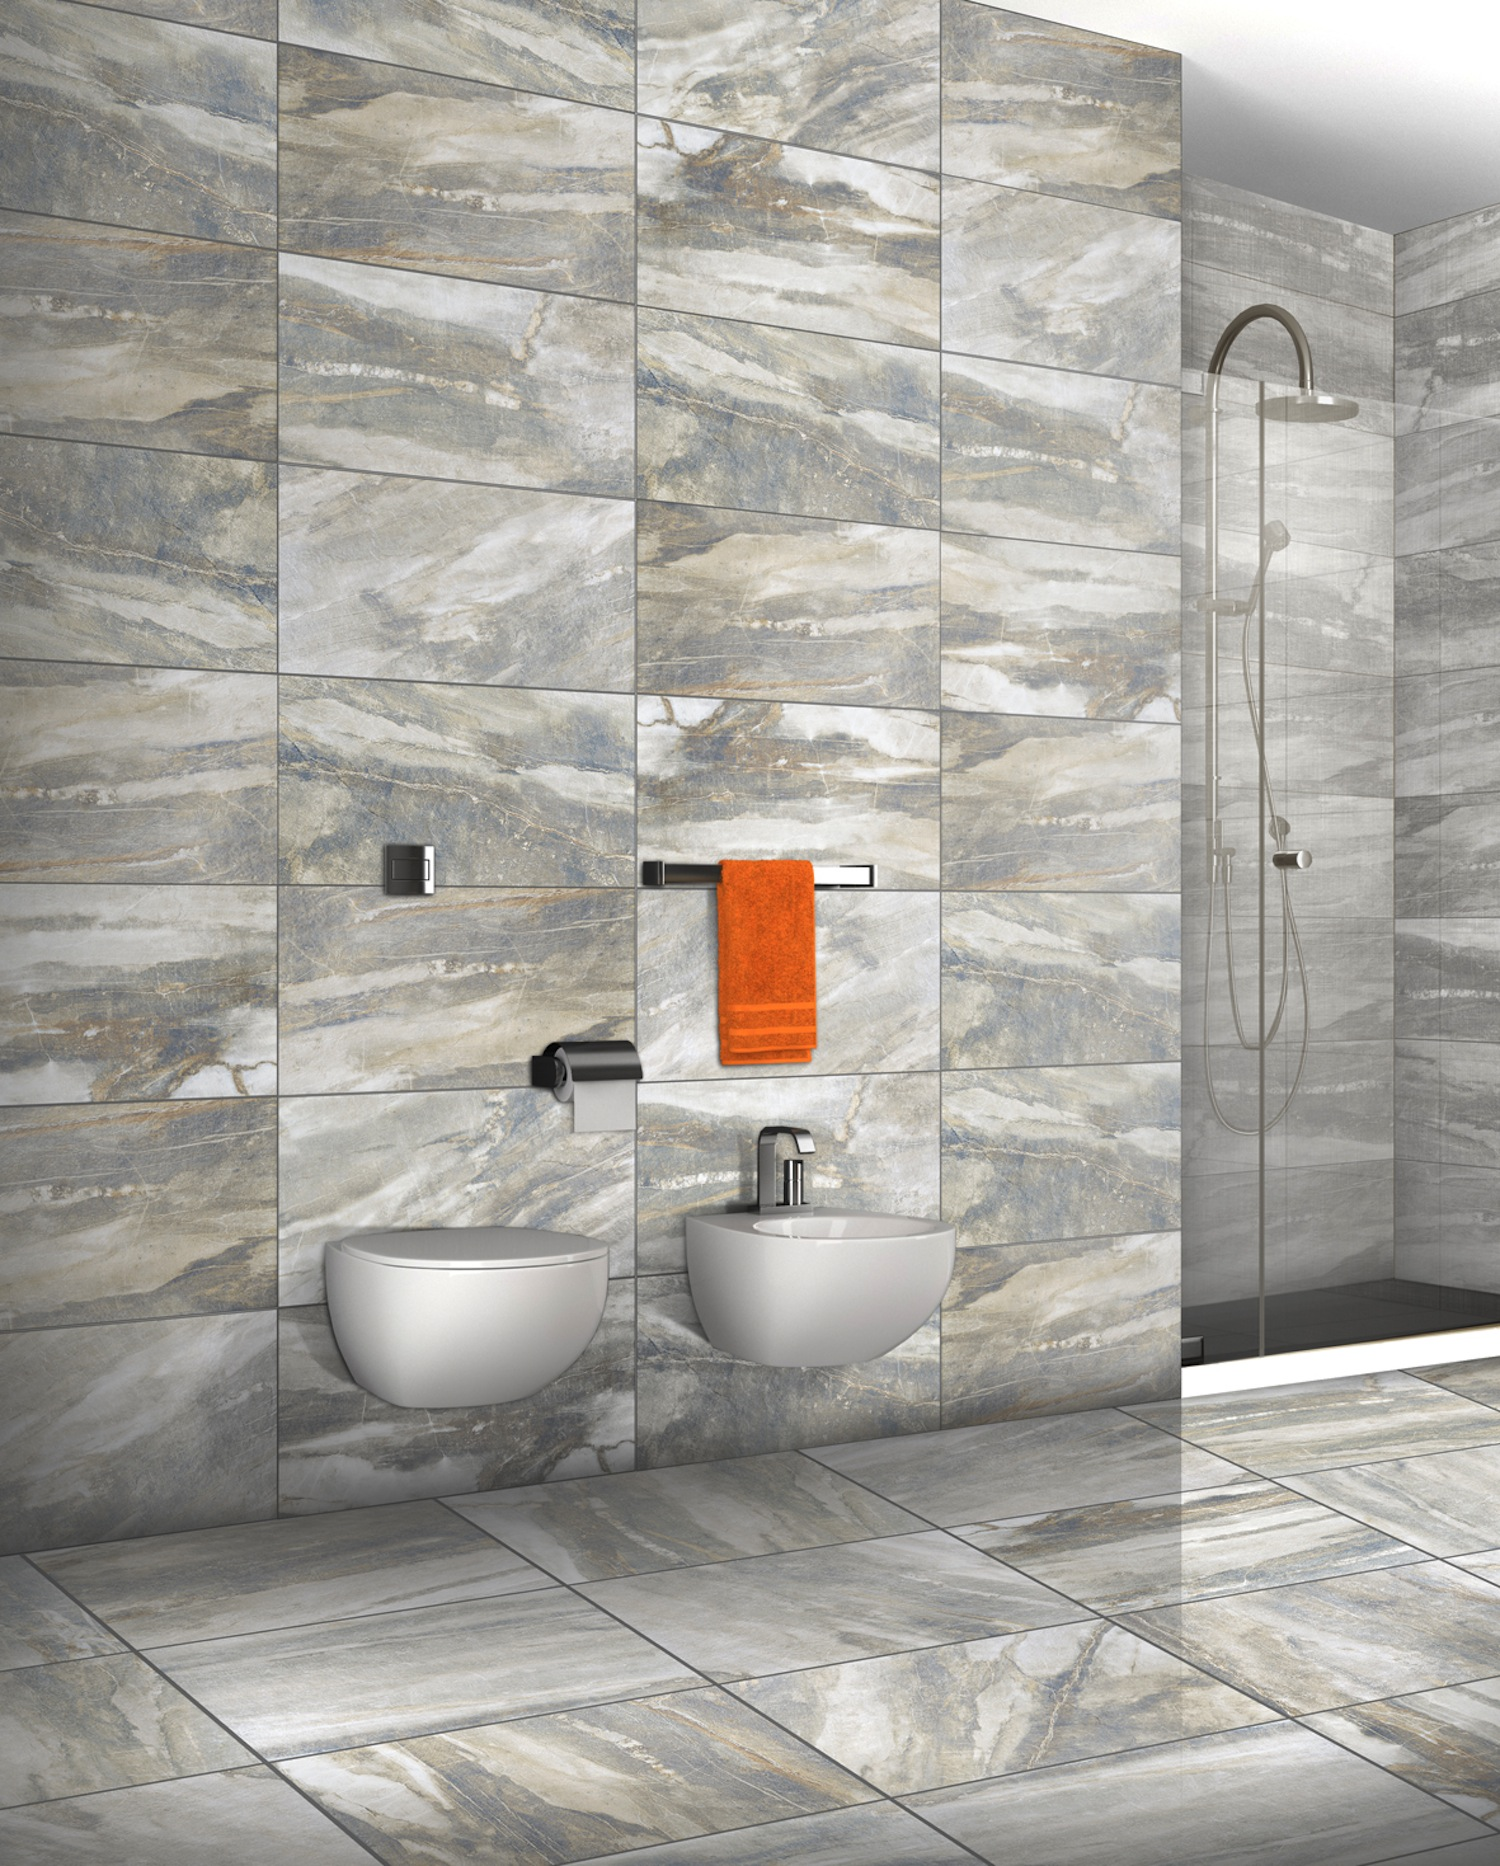 Tile Trends: Fossilized Looks | tileofspainusa.com